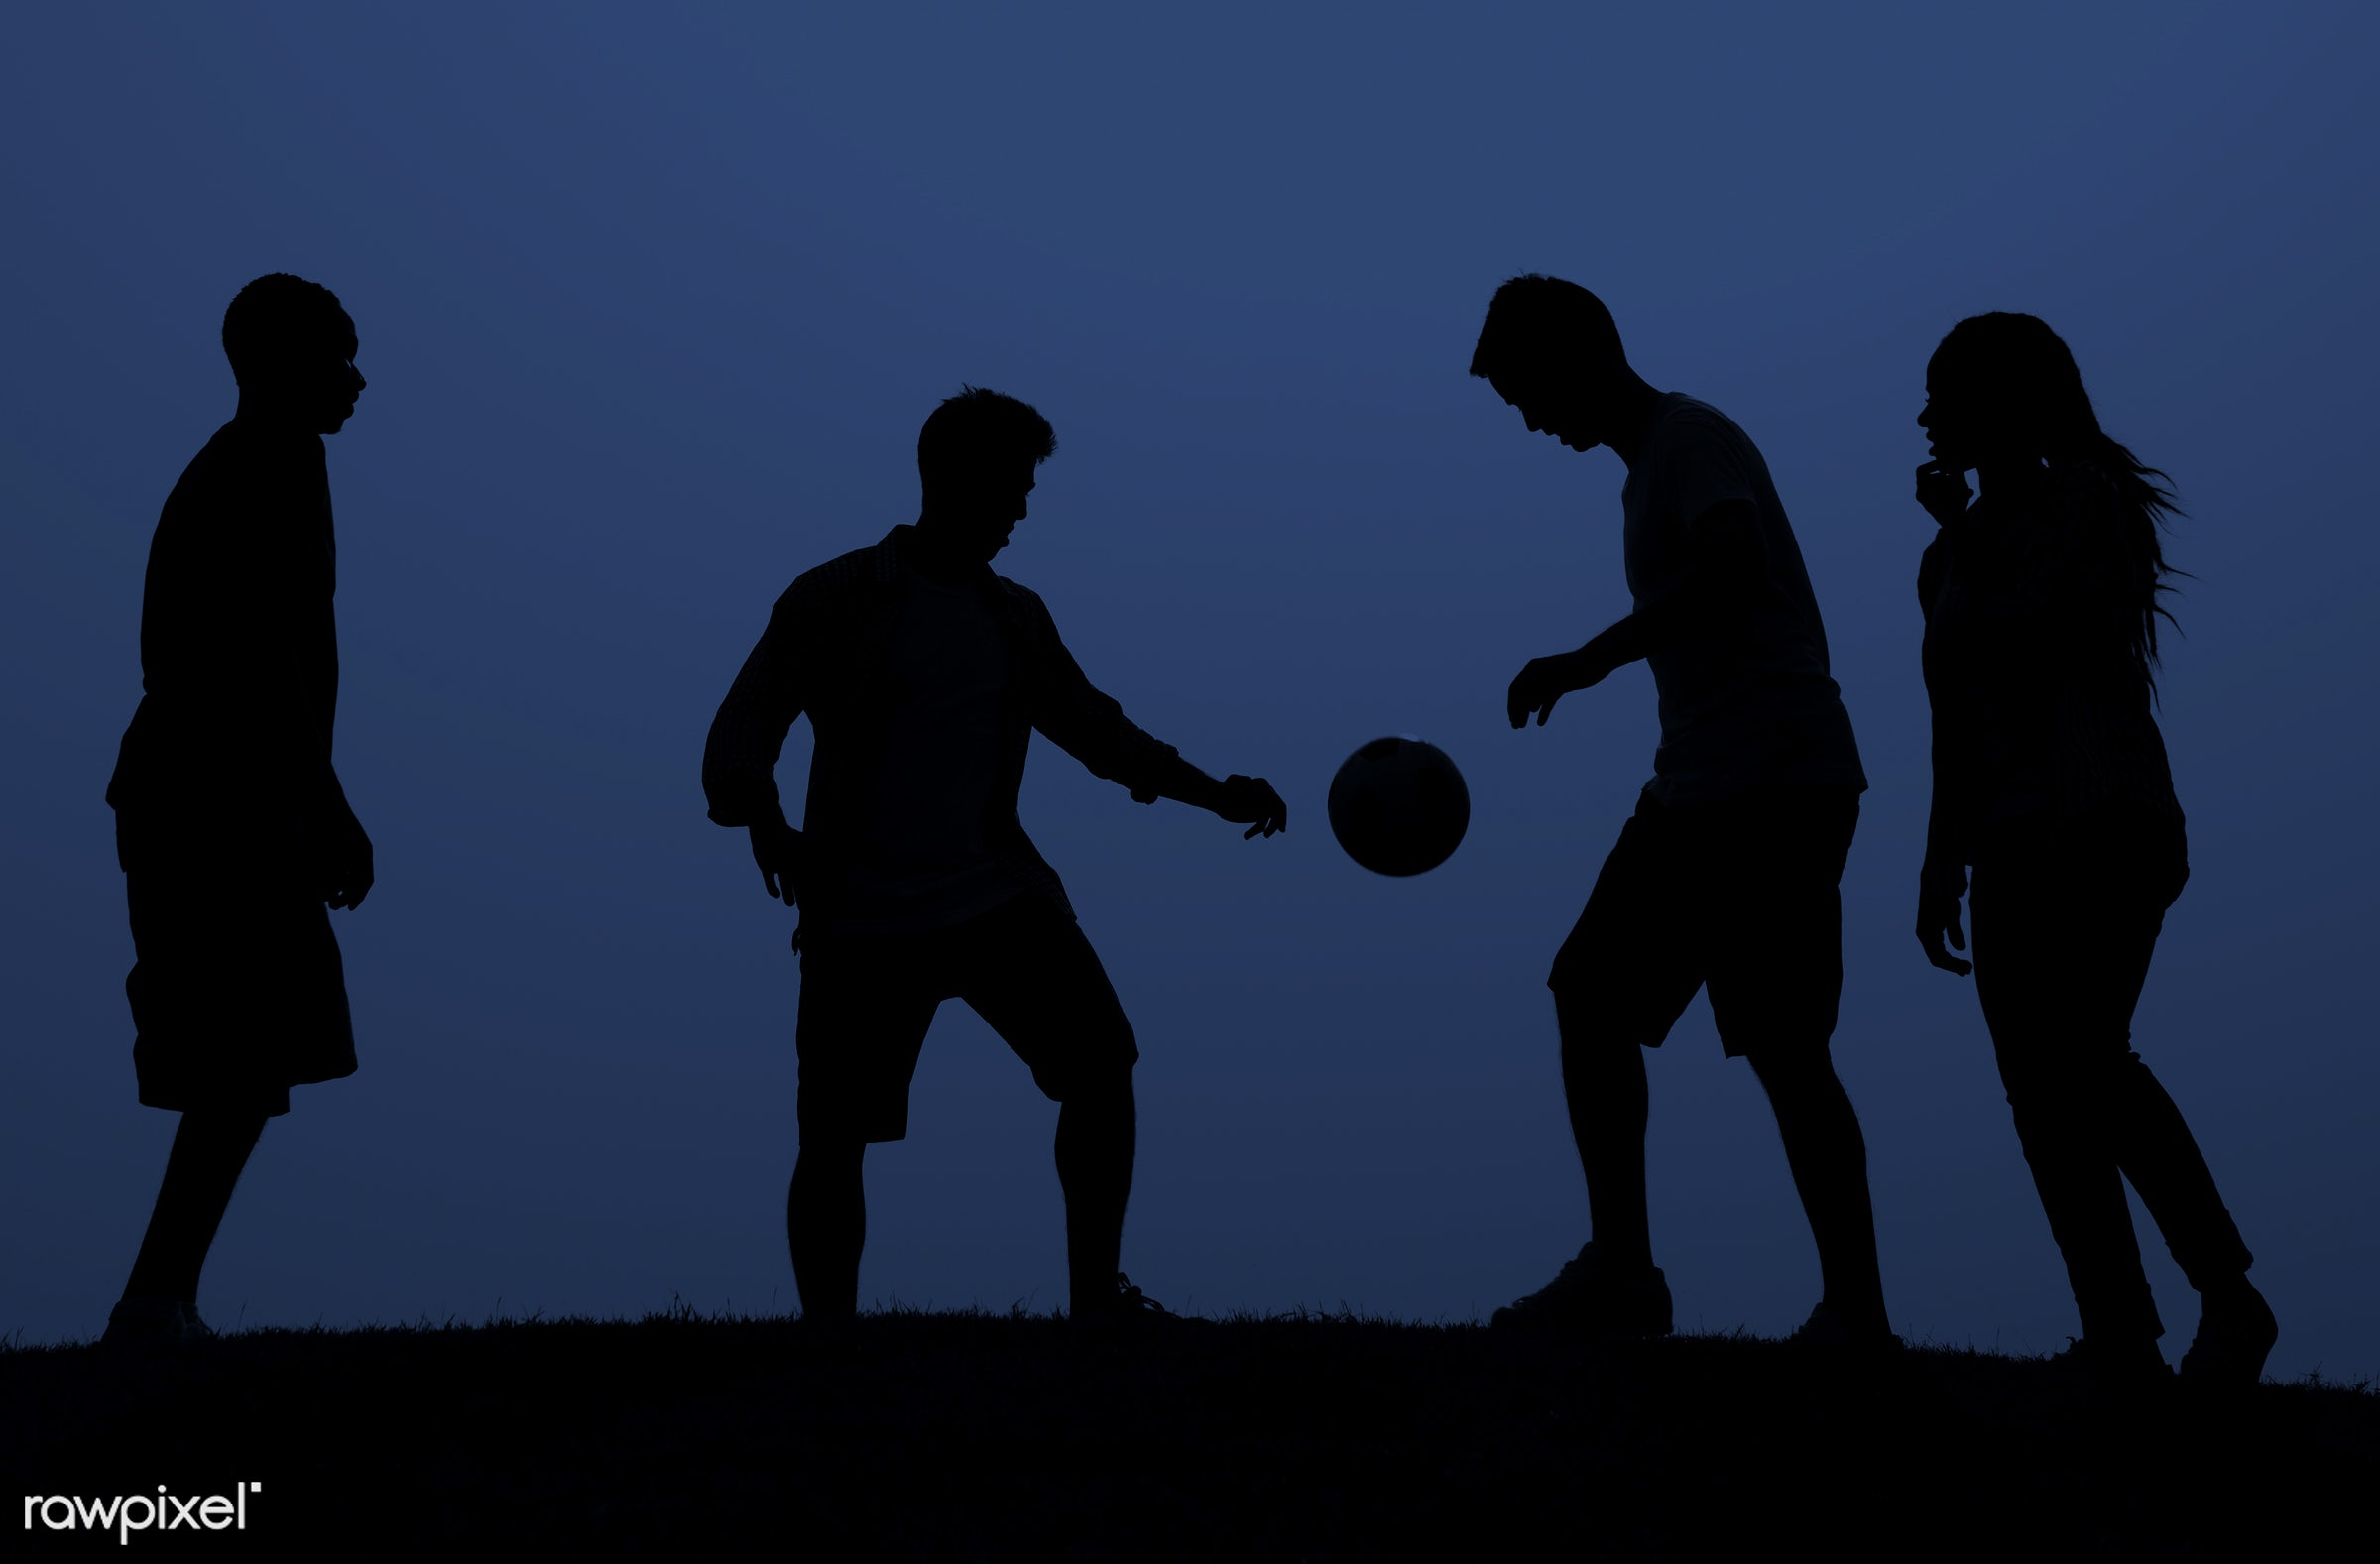 tmtong, action, active, ball, bonding, boys, field, football, friends, friendship, fun, game, girl, kicking, leisure...